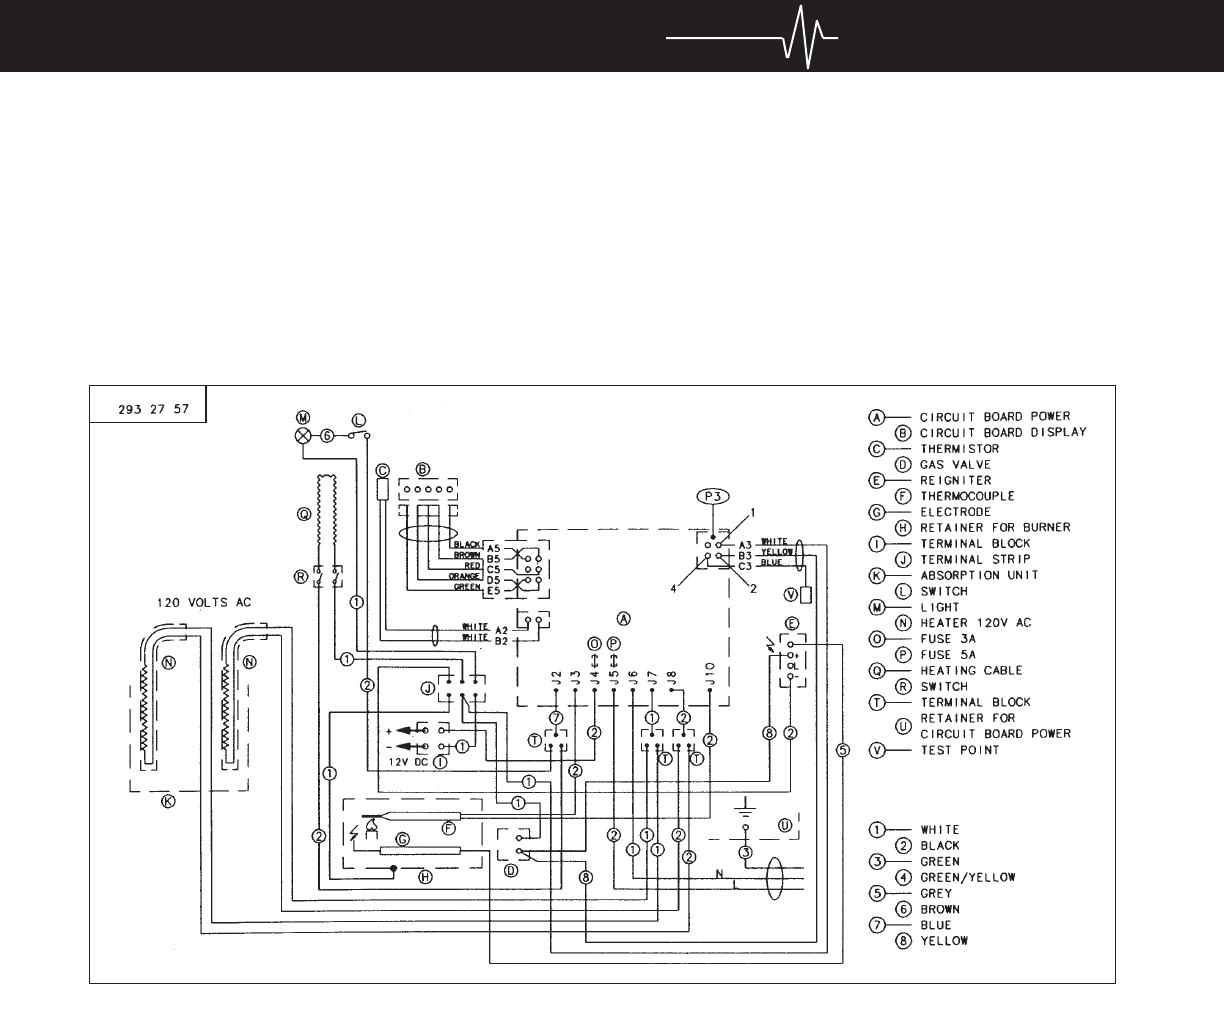 page 27 of dometic refrigerator rm7030 user guide